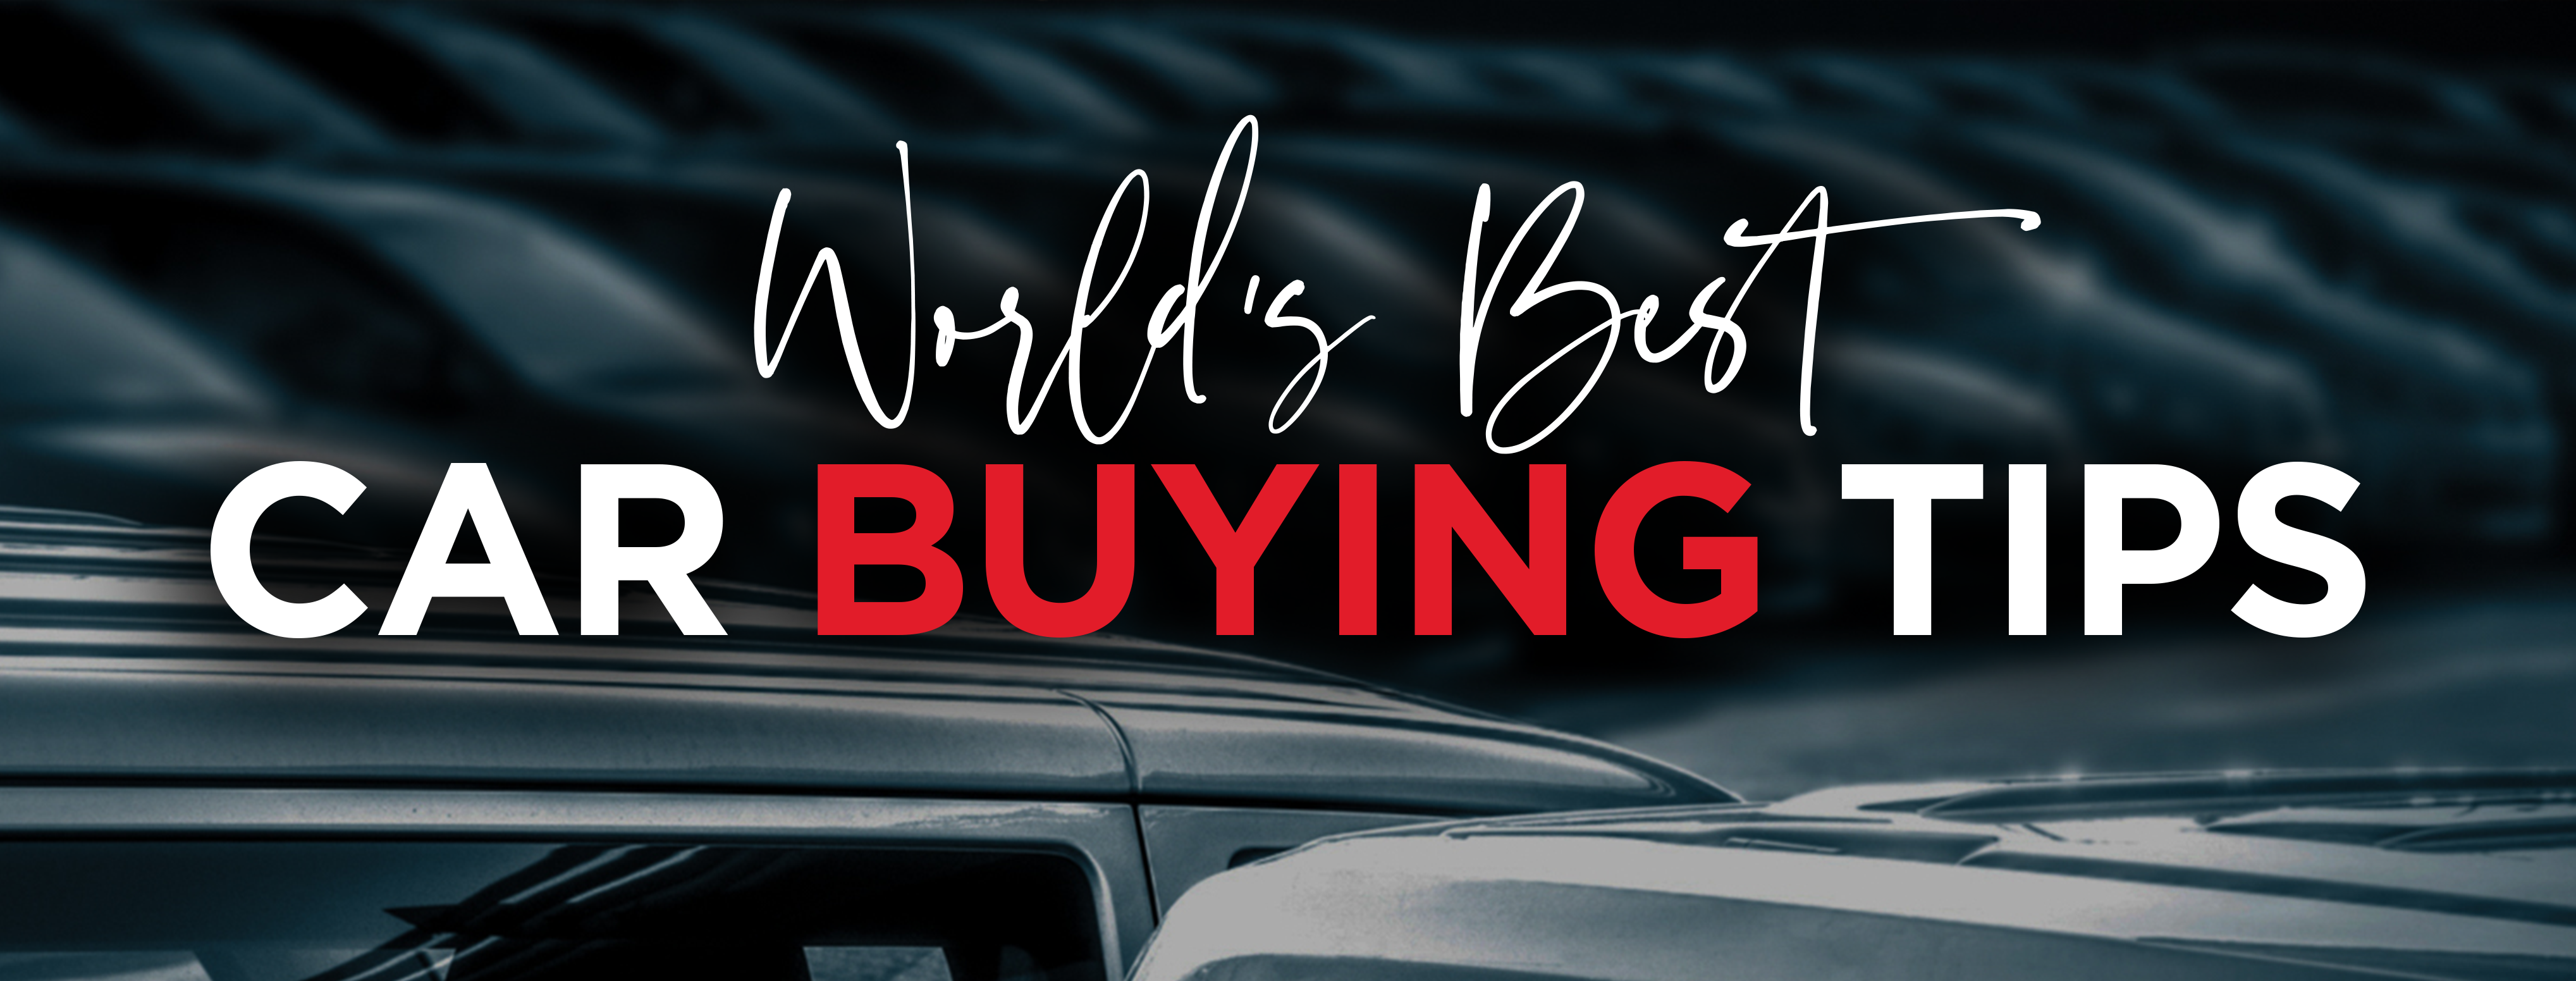 World's Best Car Buying Tips